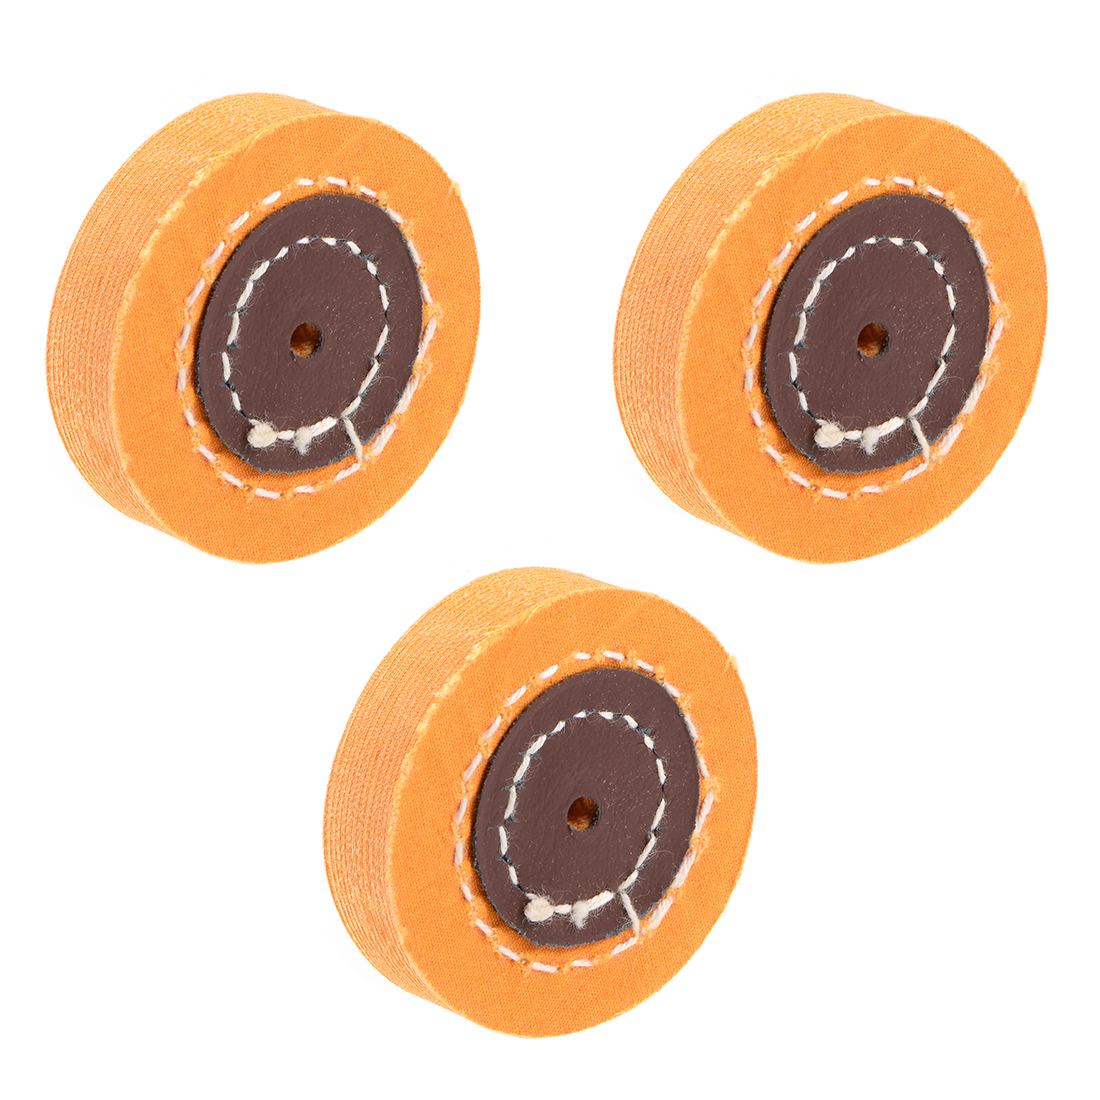 2-Inch Cotton Buffing Wheel Polishing Pad for Bench Grinder Tool 3 Pcs